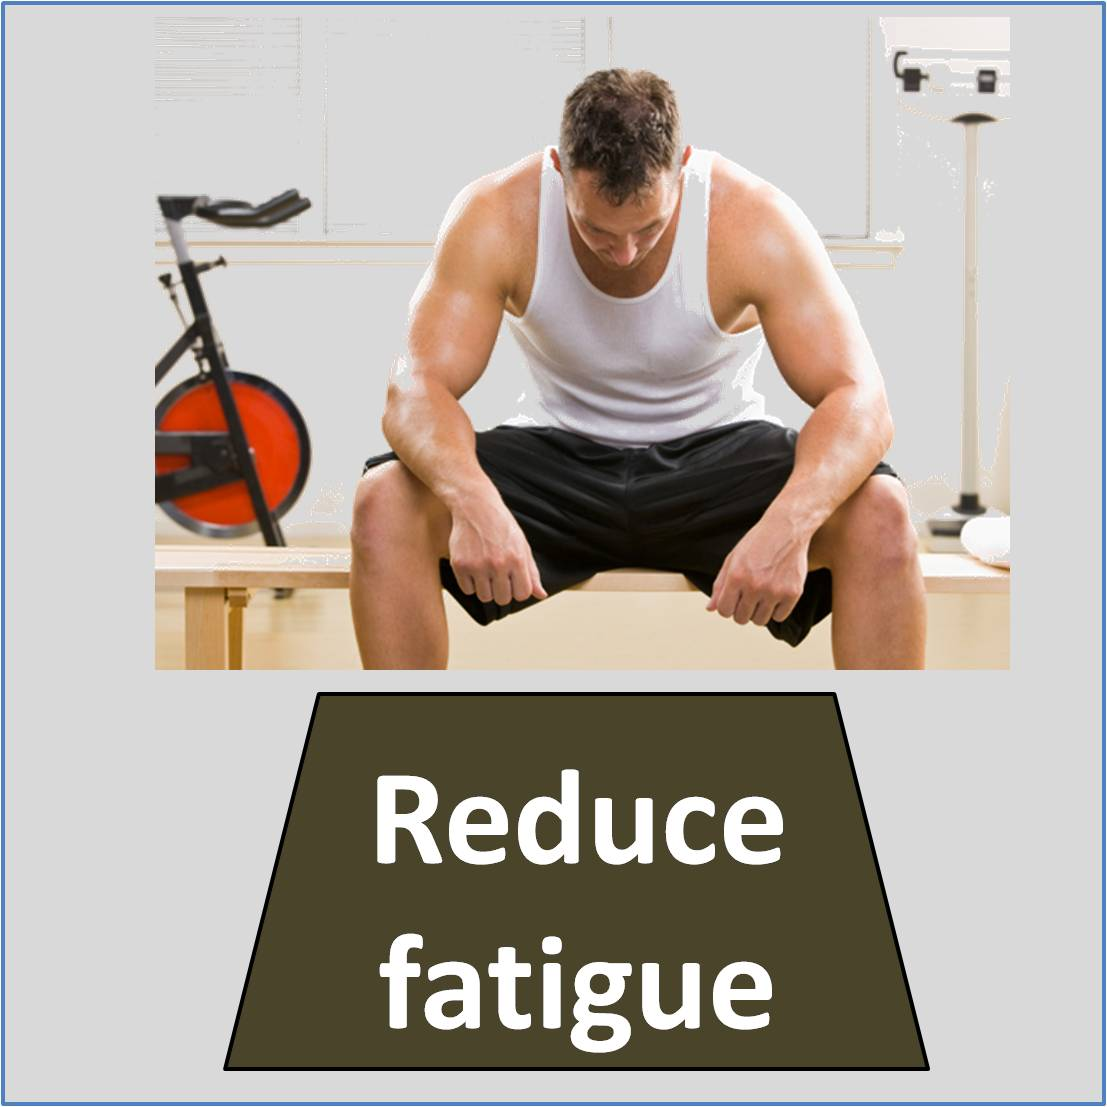 Reduce fatigue